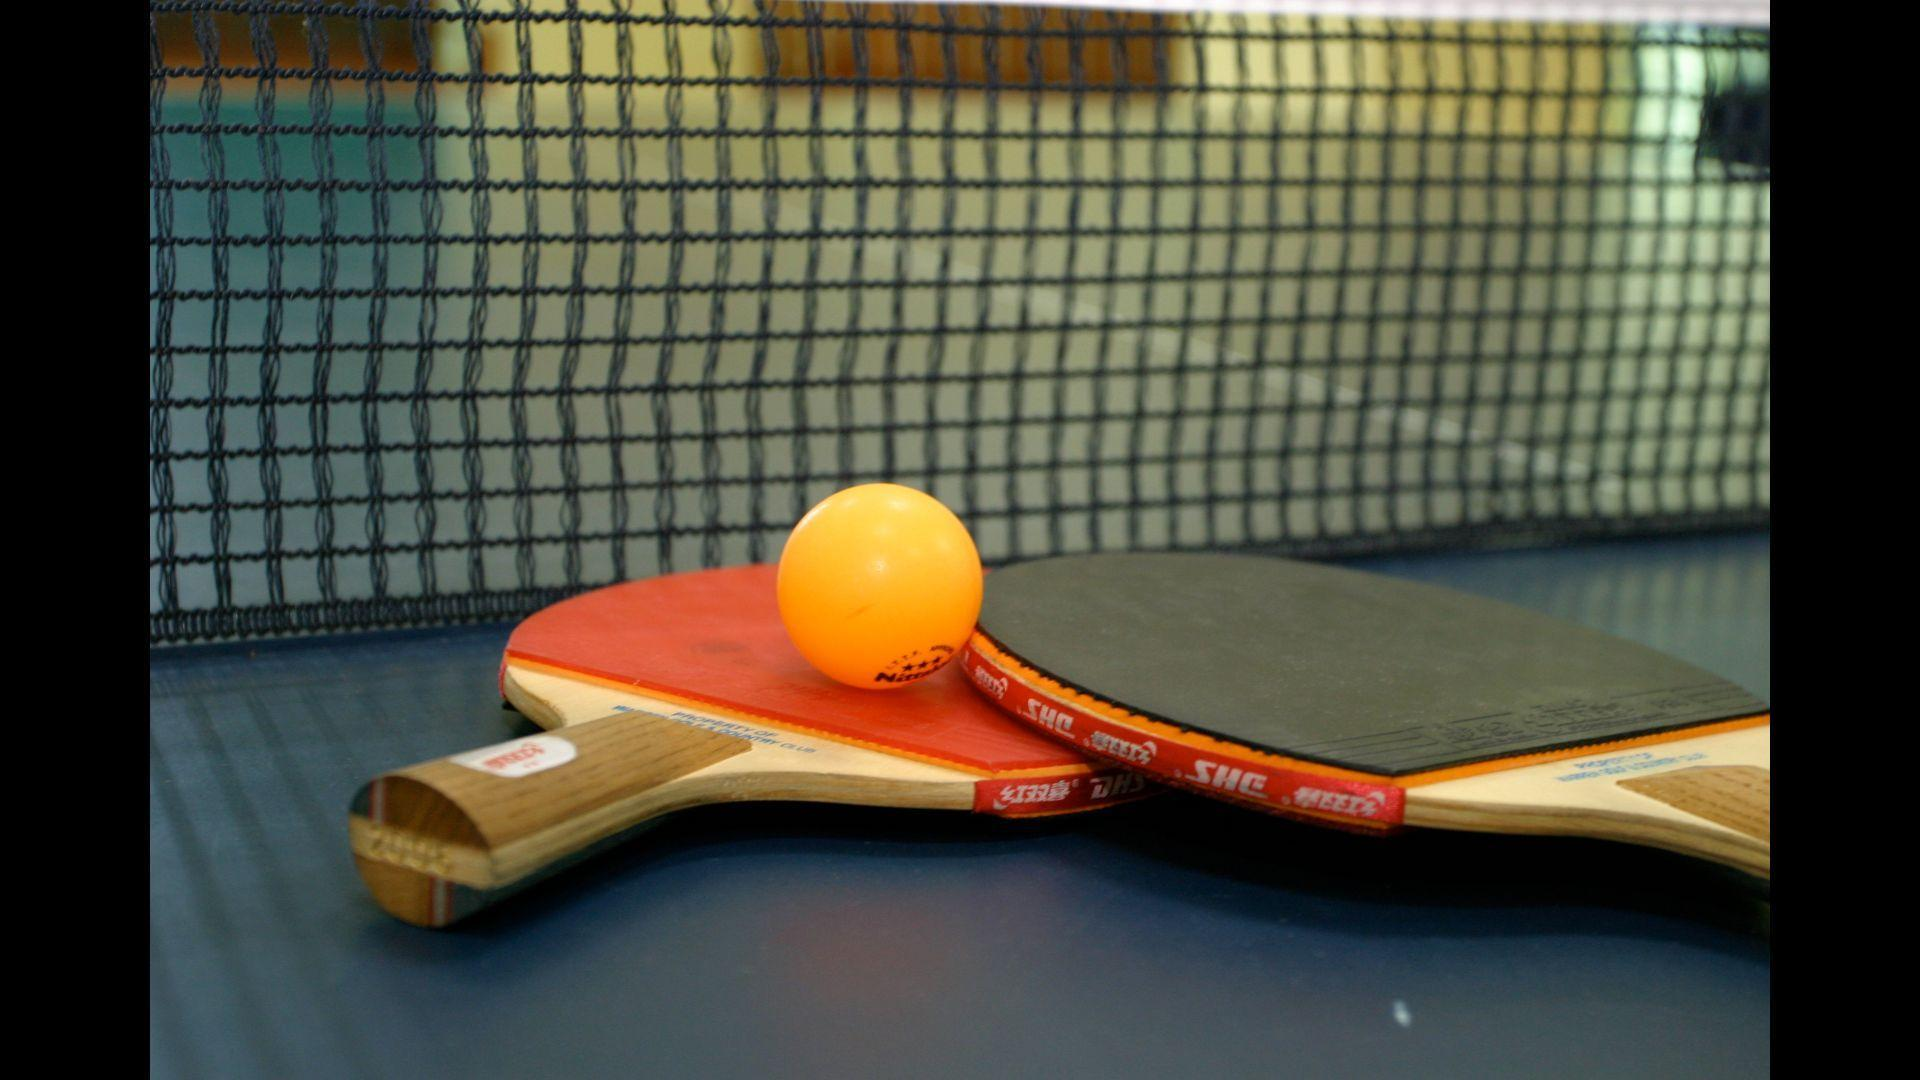 Ping Pong Wallpapers Top Free Ping Pong Backgrounds Wallpaperaccess